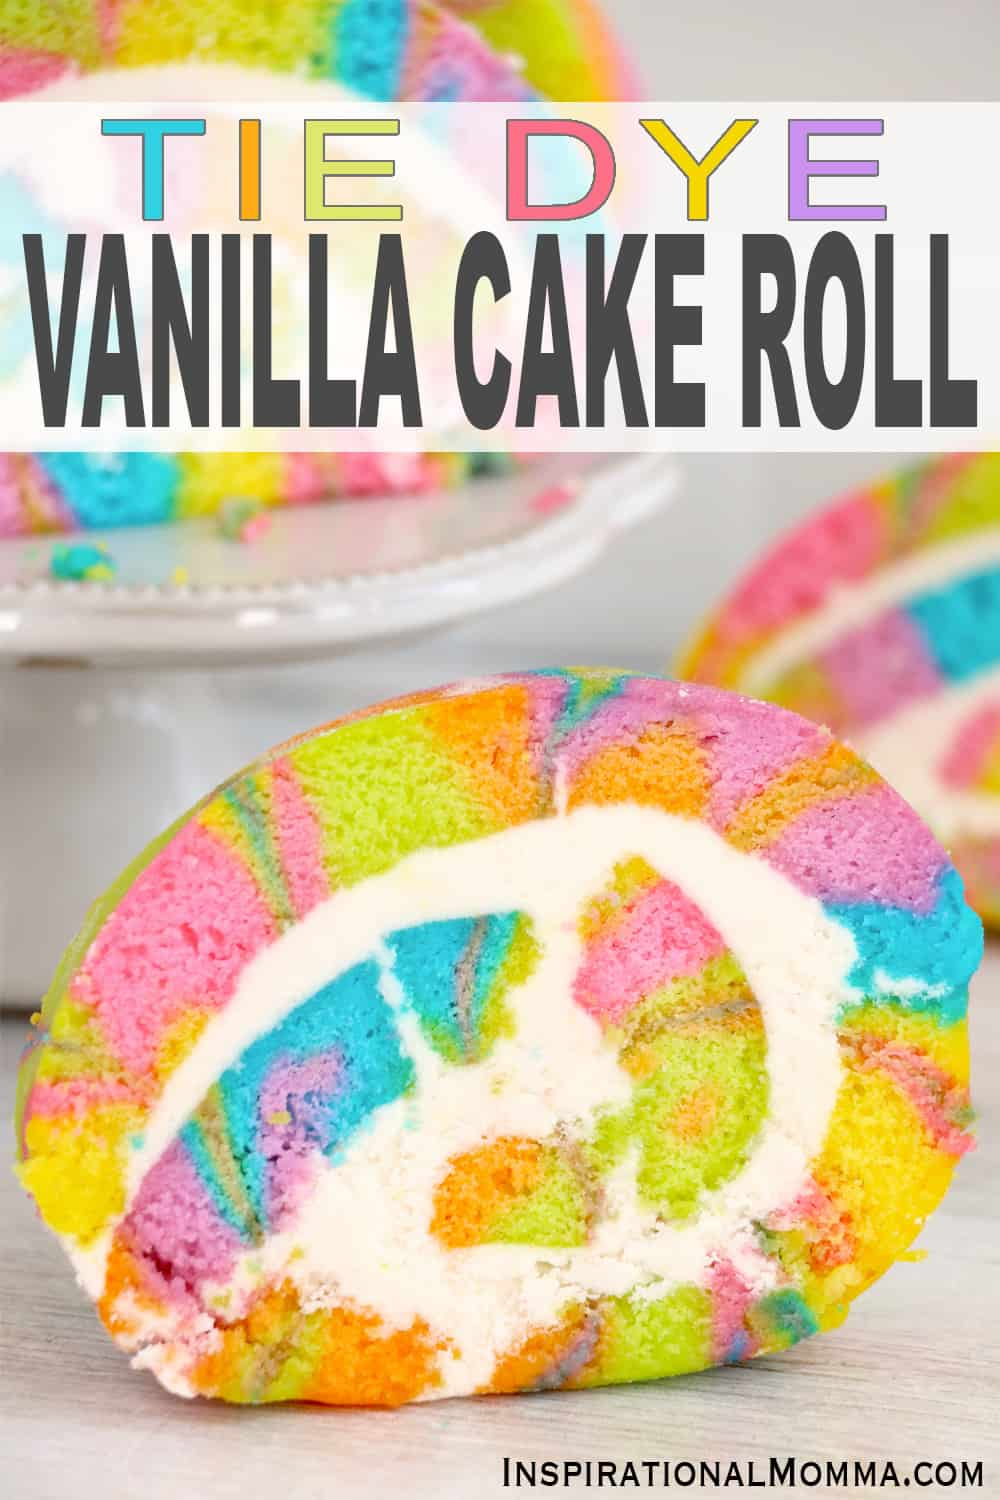 This Tie Dye Vanilla Cake Roll is a sweet, rich, and decadent roll cake filled with homemade buttercream frosting. Perfect for parties! #InspirationalMomma #vanillacakeroll #vanillarollcake #tiedyevanillacakeroll #cakeroll #rollcake #cakepinwheels #pinwheelcakes #cakeandbuttercreamfrosting #buttercreamfrosting